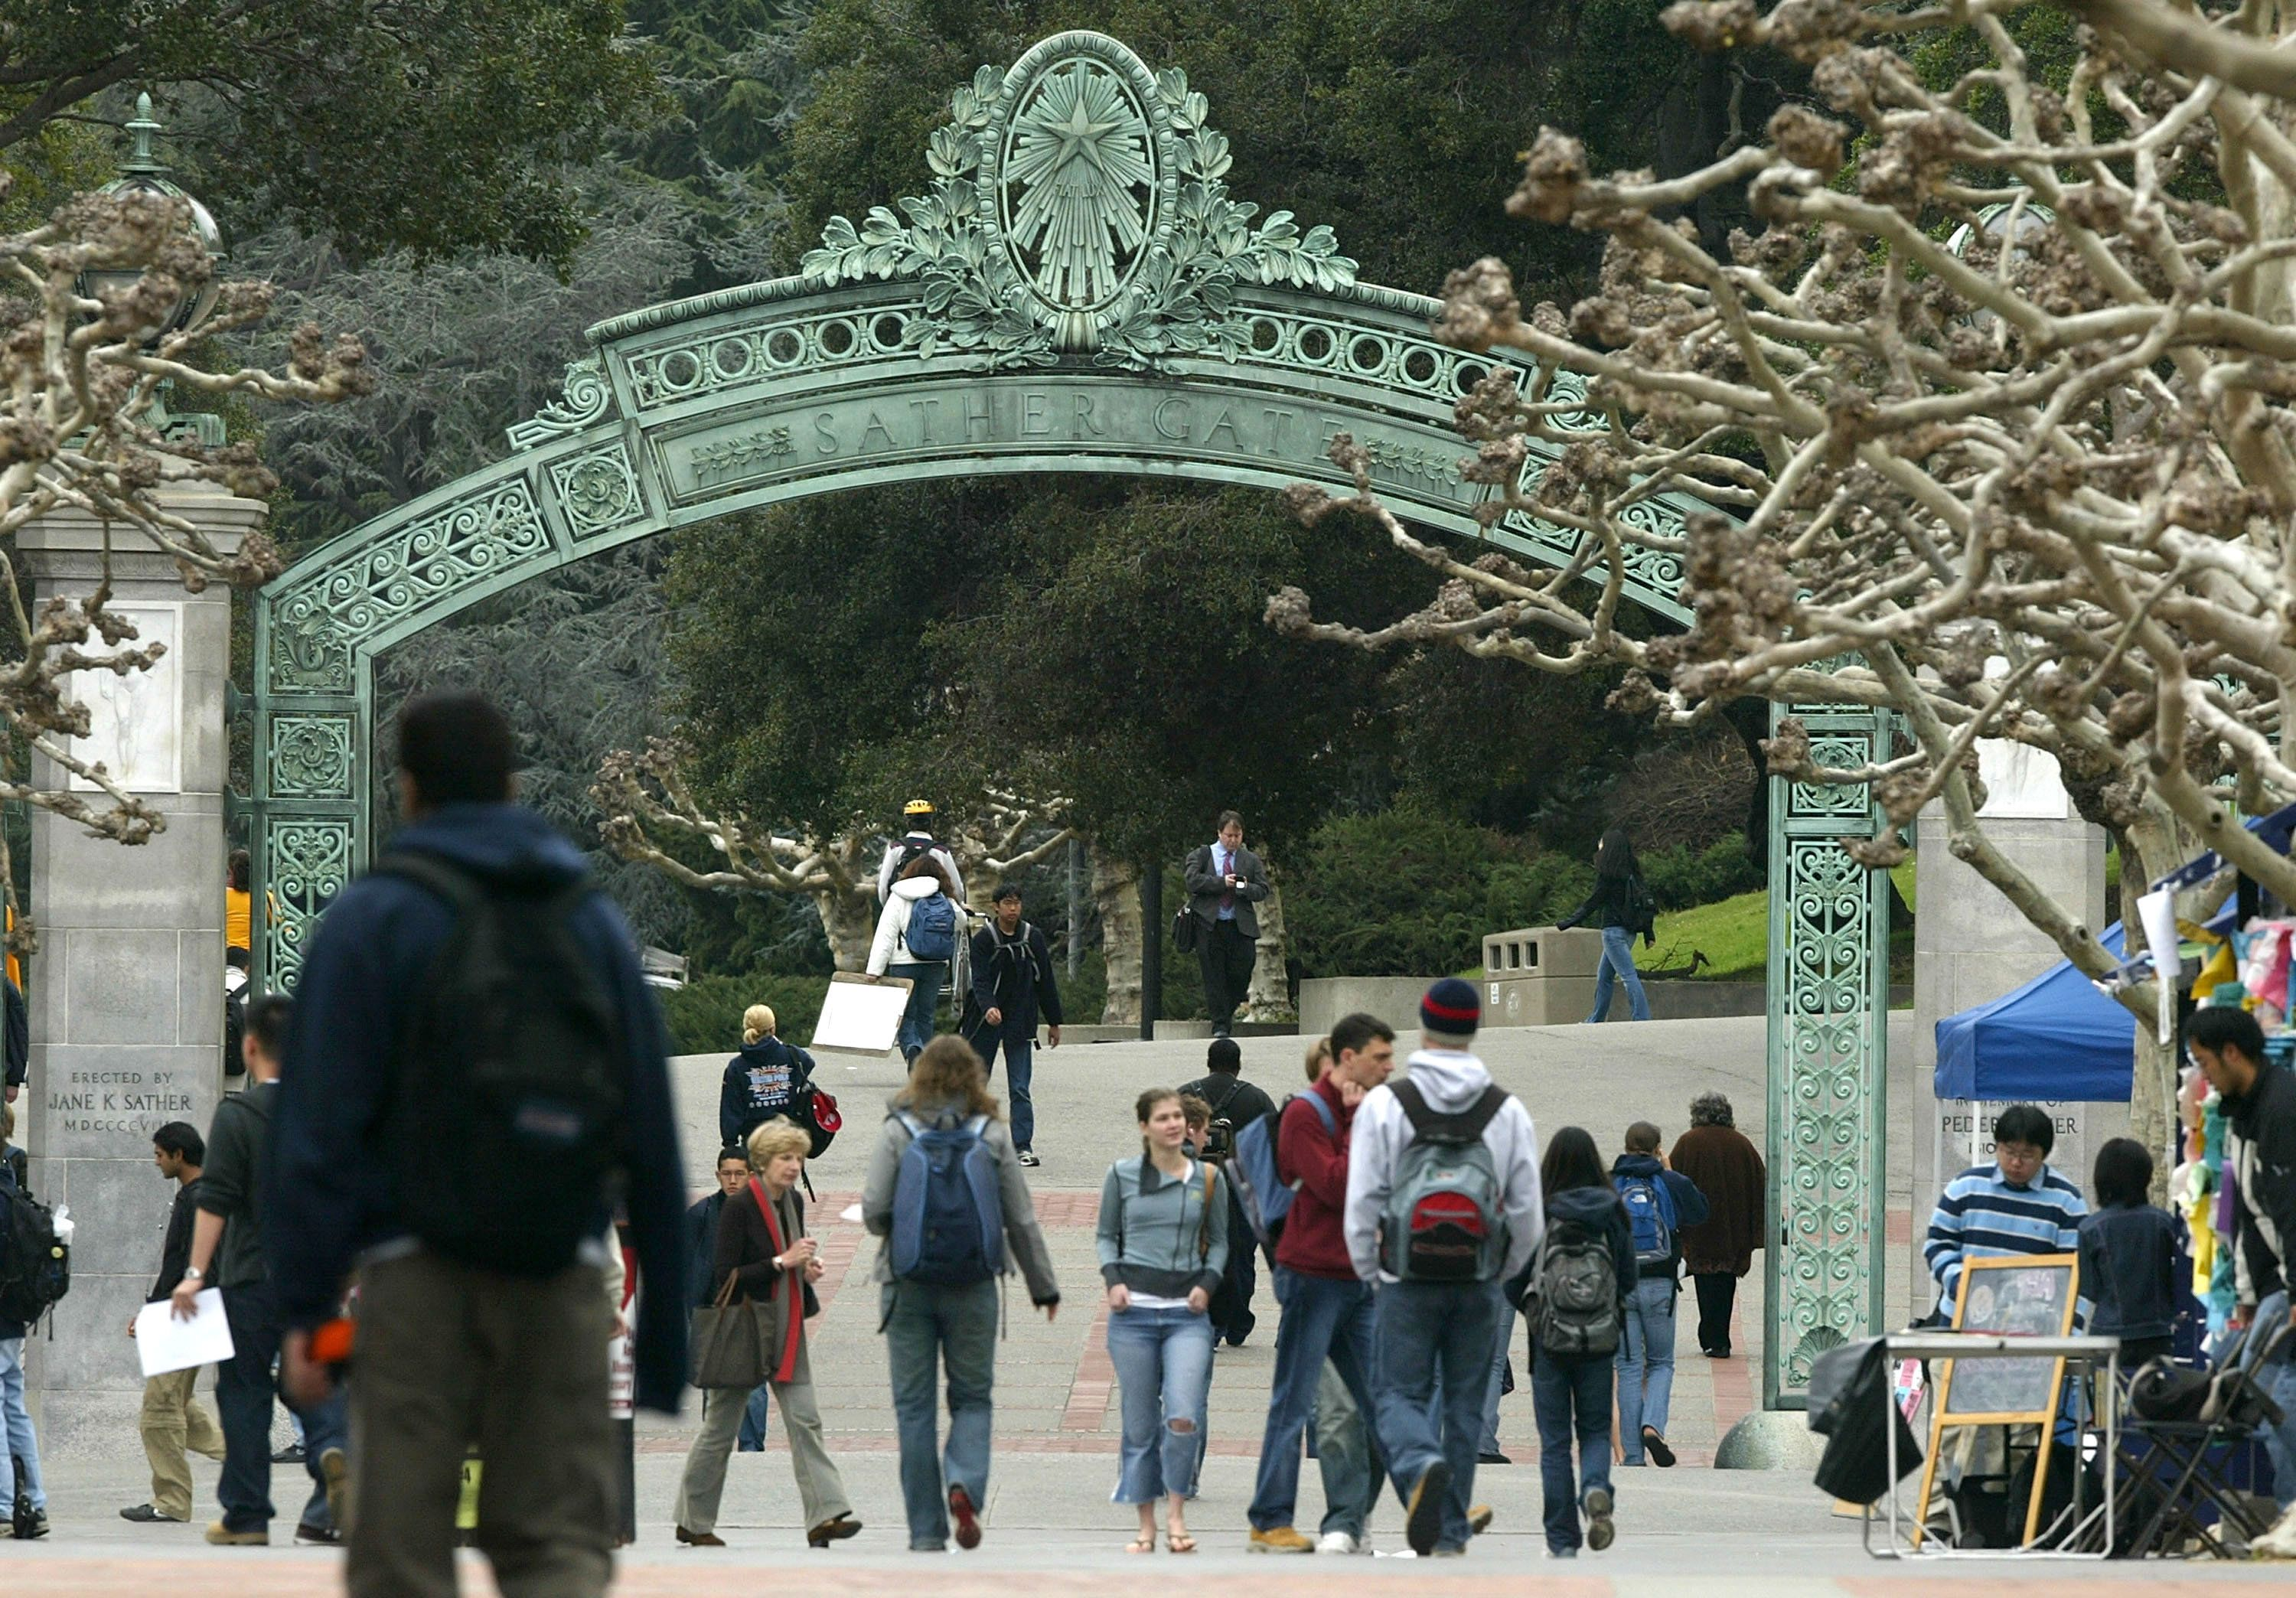 BERKELEY, CA - FEBRUARY 24:  Students walk near Sather Gate on the University of California at Berkeley campus February 24, 2005 in Berkeley, California. The City of Berkeley is suing U.C. Berkeley citing that university administrators did not adequately evaluate the consequences to the city with its 15-year growth plan and hopes to block construction of any new projects.  (Photo by Justin Sullivan/Getty Images)